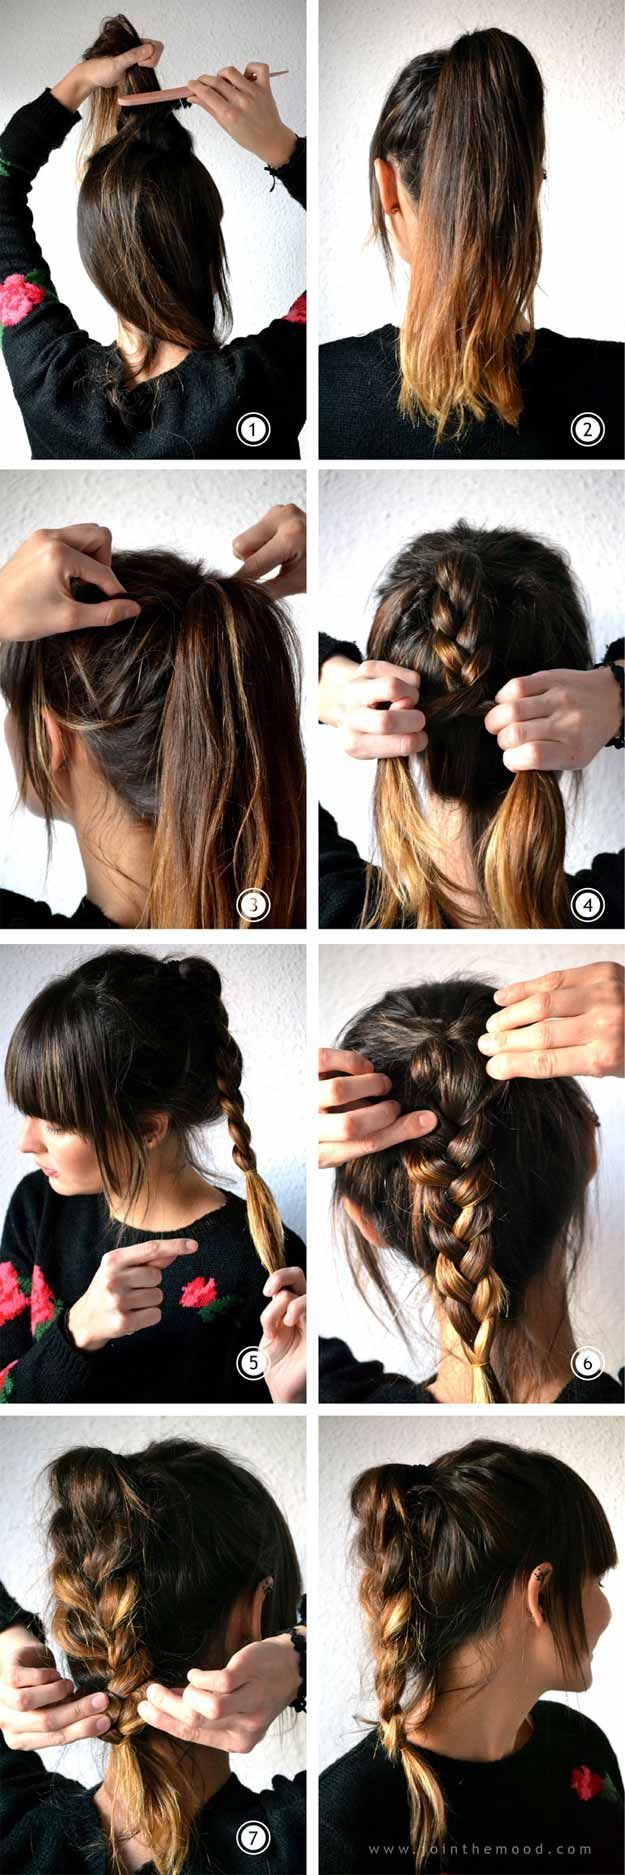 Best Hairstyles For Your 20s -Messy Braid Ponytail- Hair Dos And Don'ts For Yo...